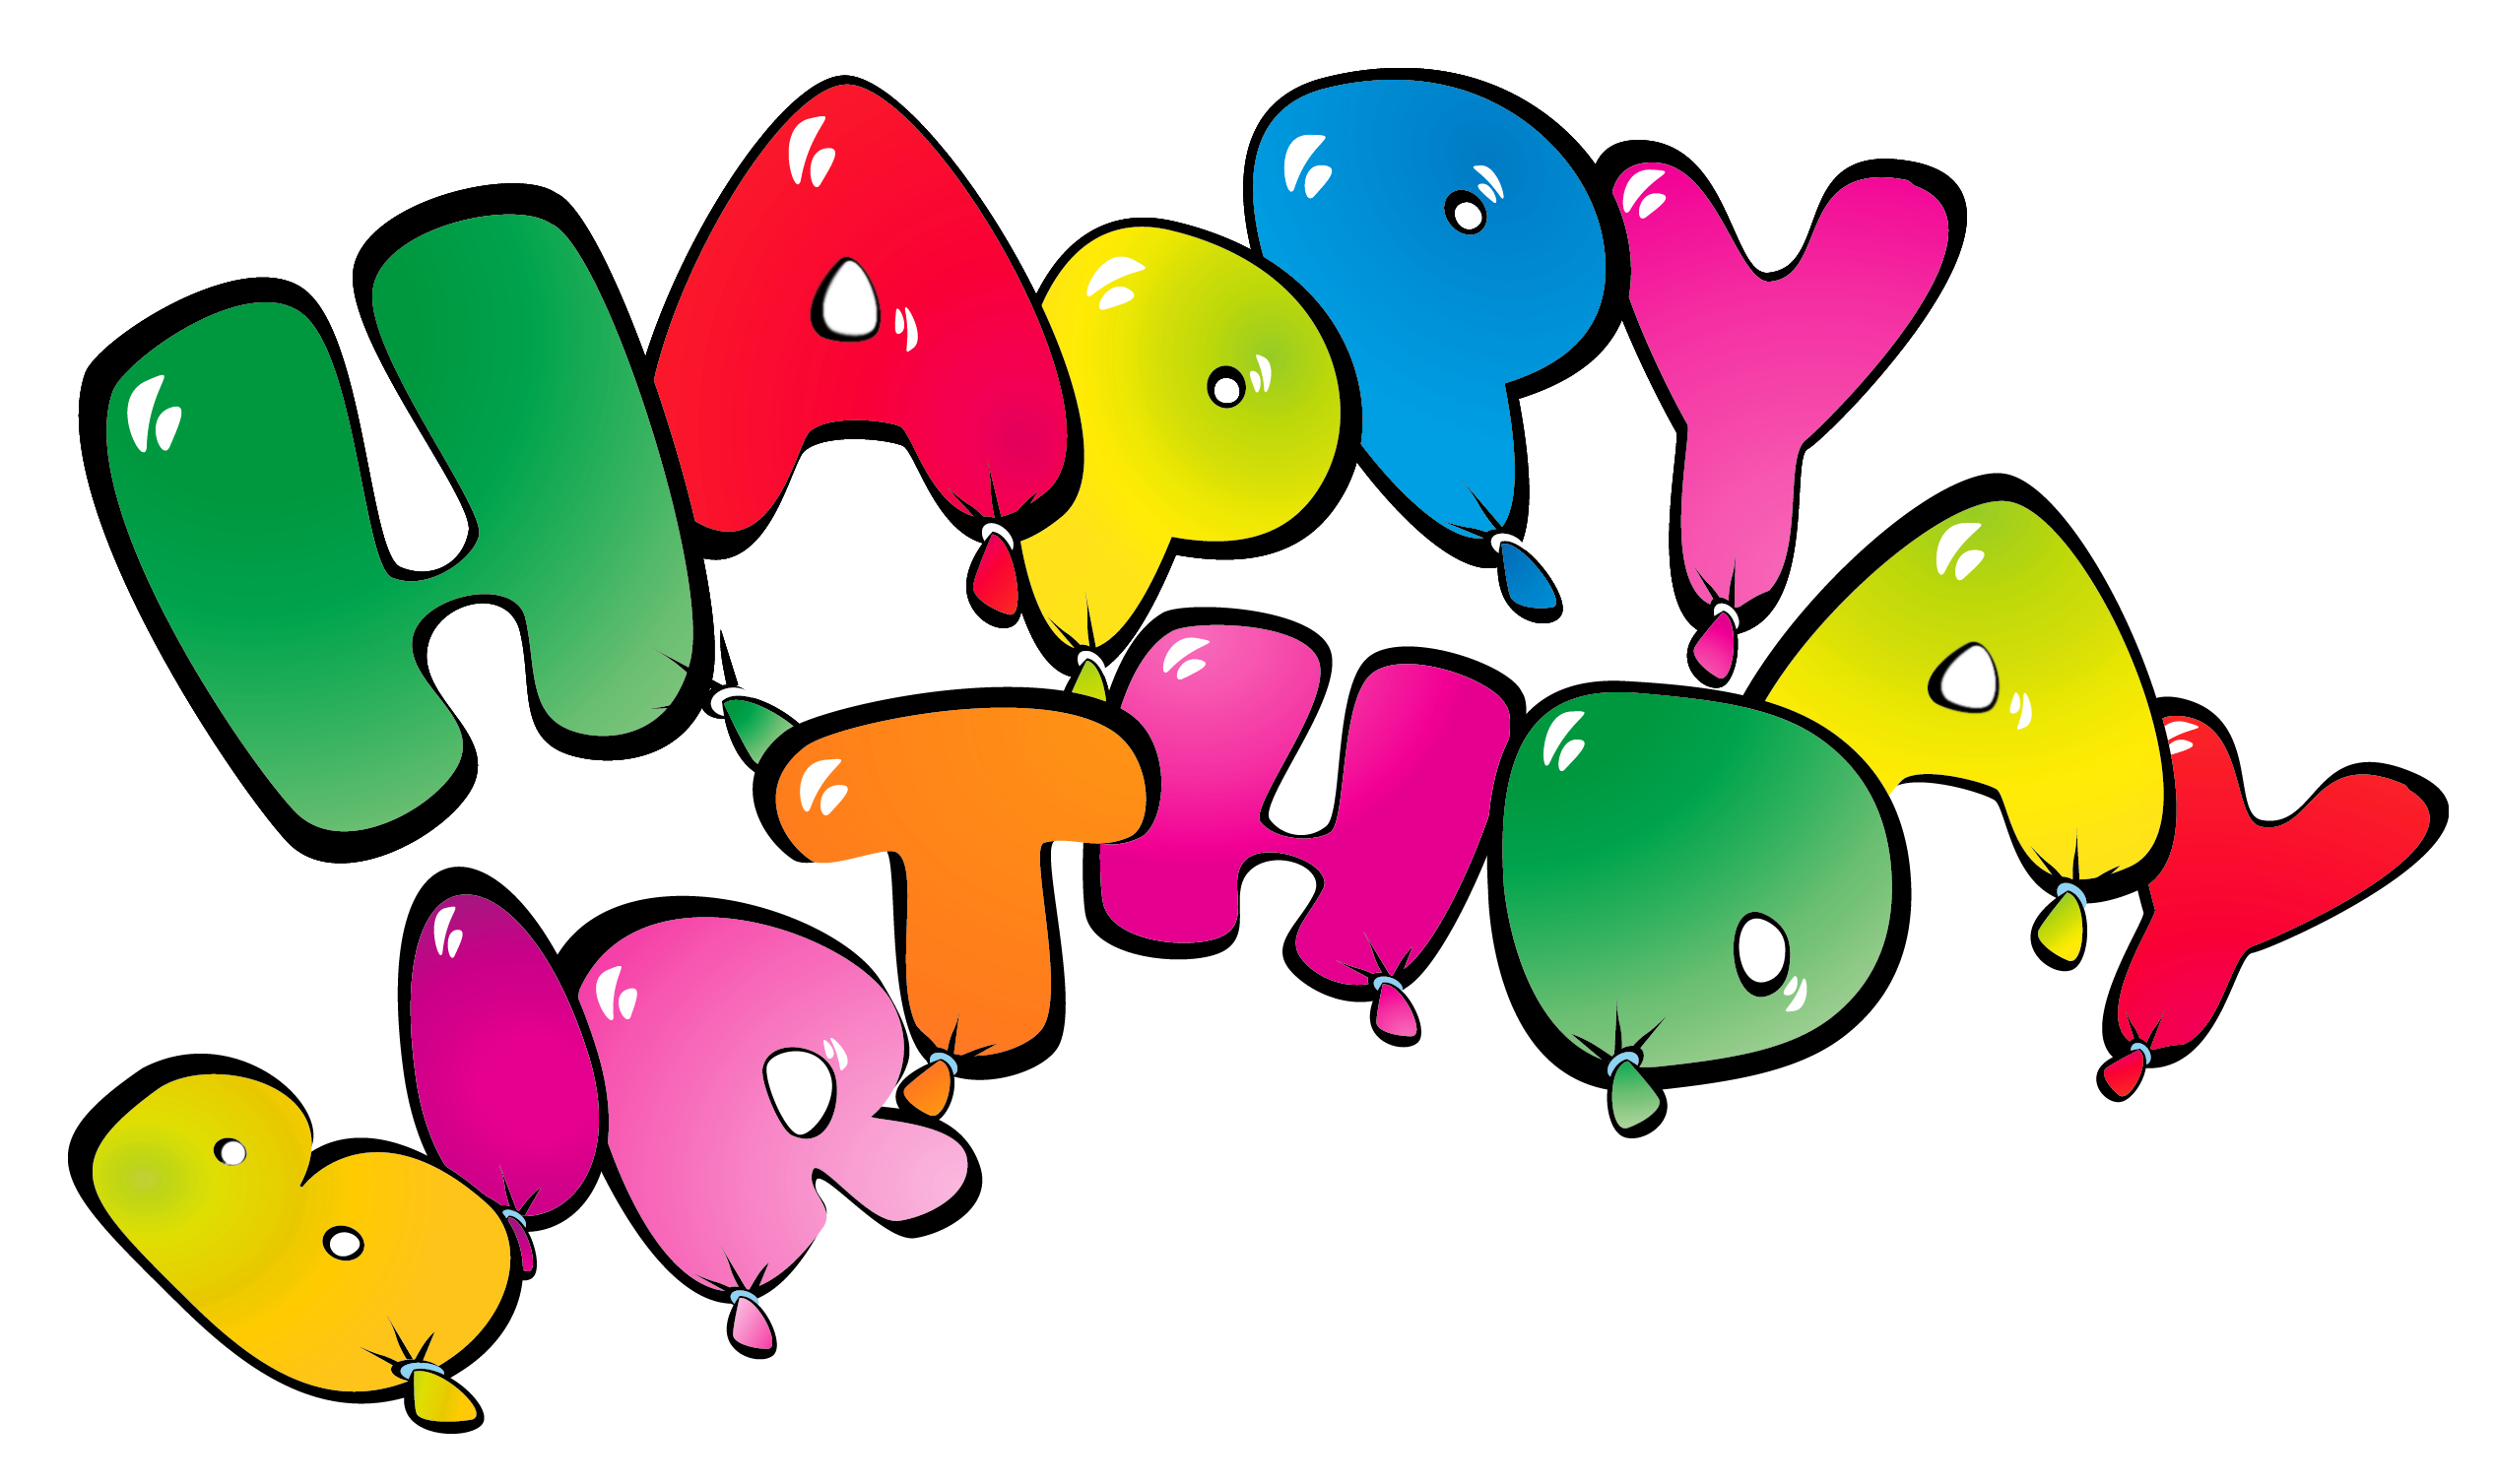 2533x1507 Transparent Happy Birthay Balloons Png Clipart Pictureu200b Gallery